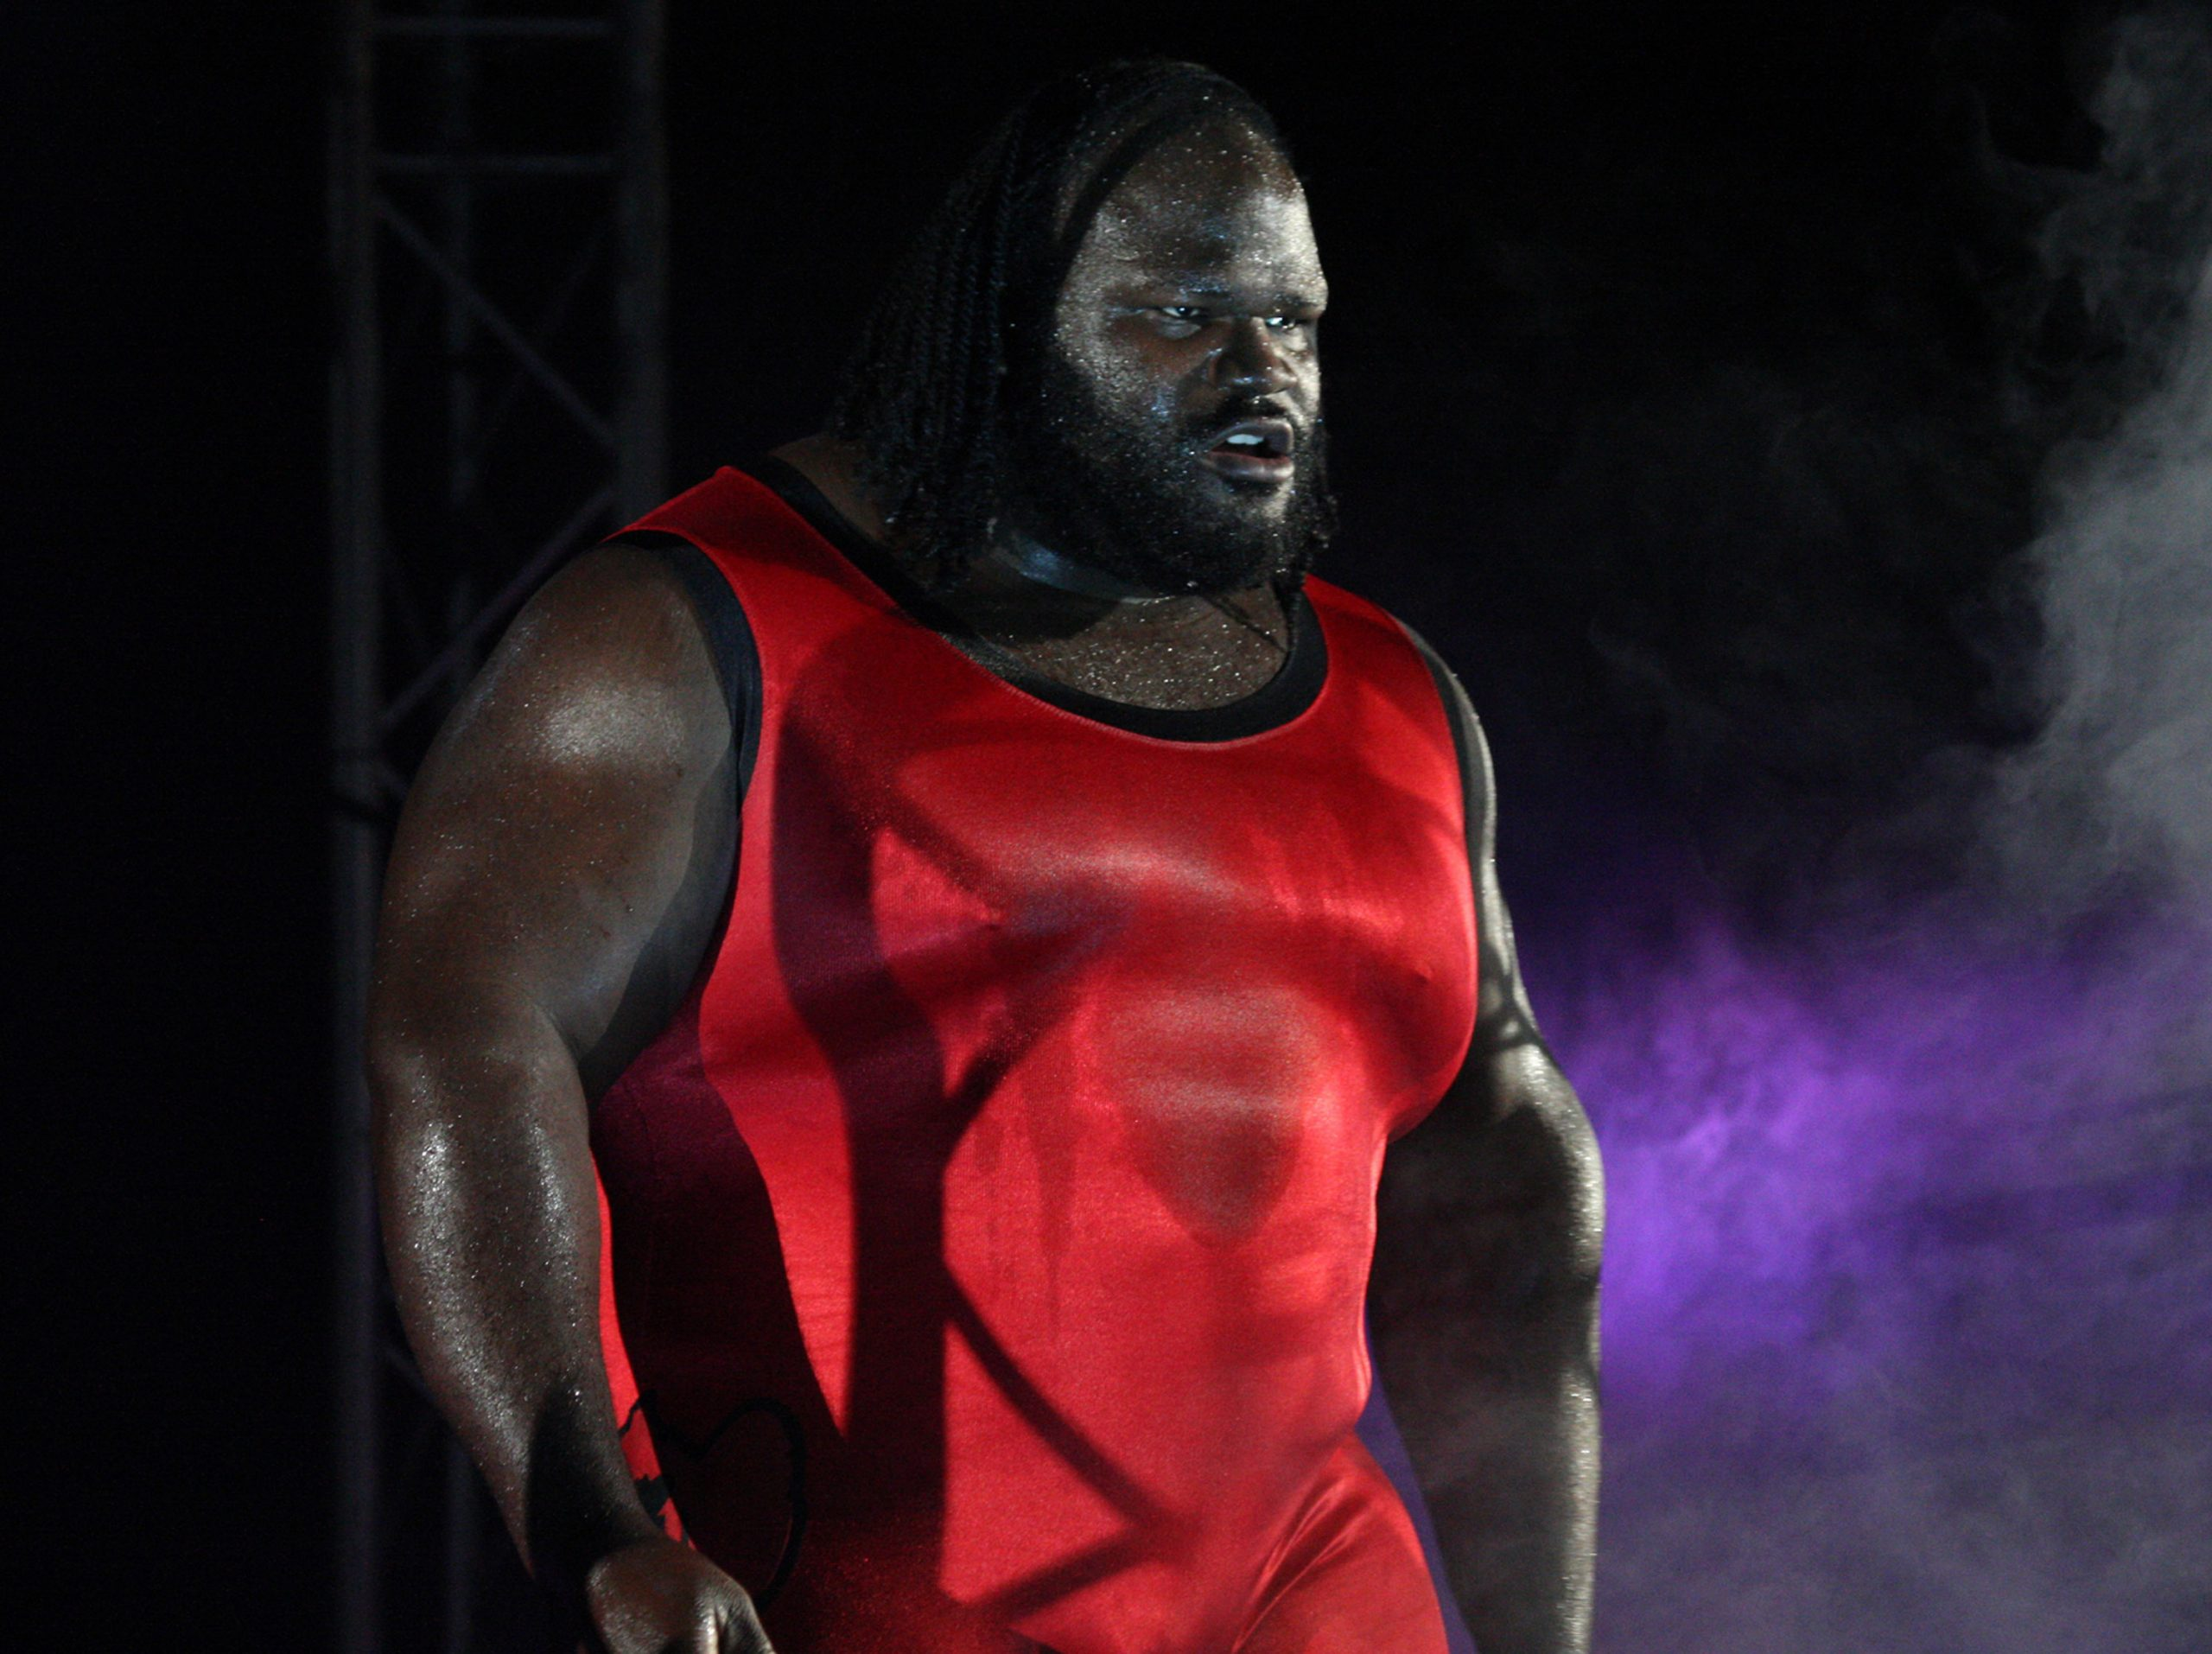 Mark Henry during his WWE days